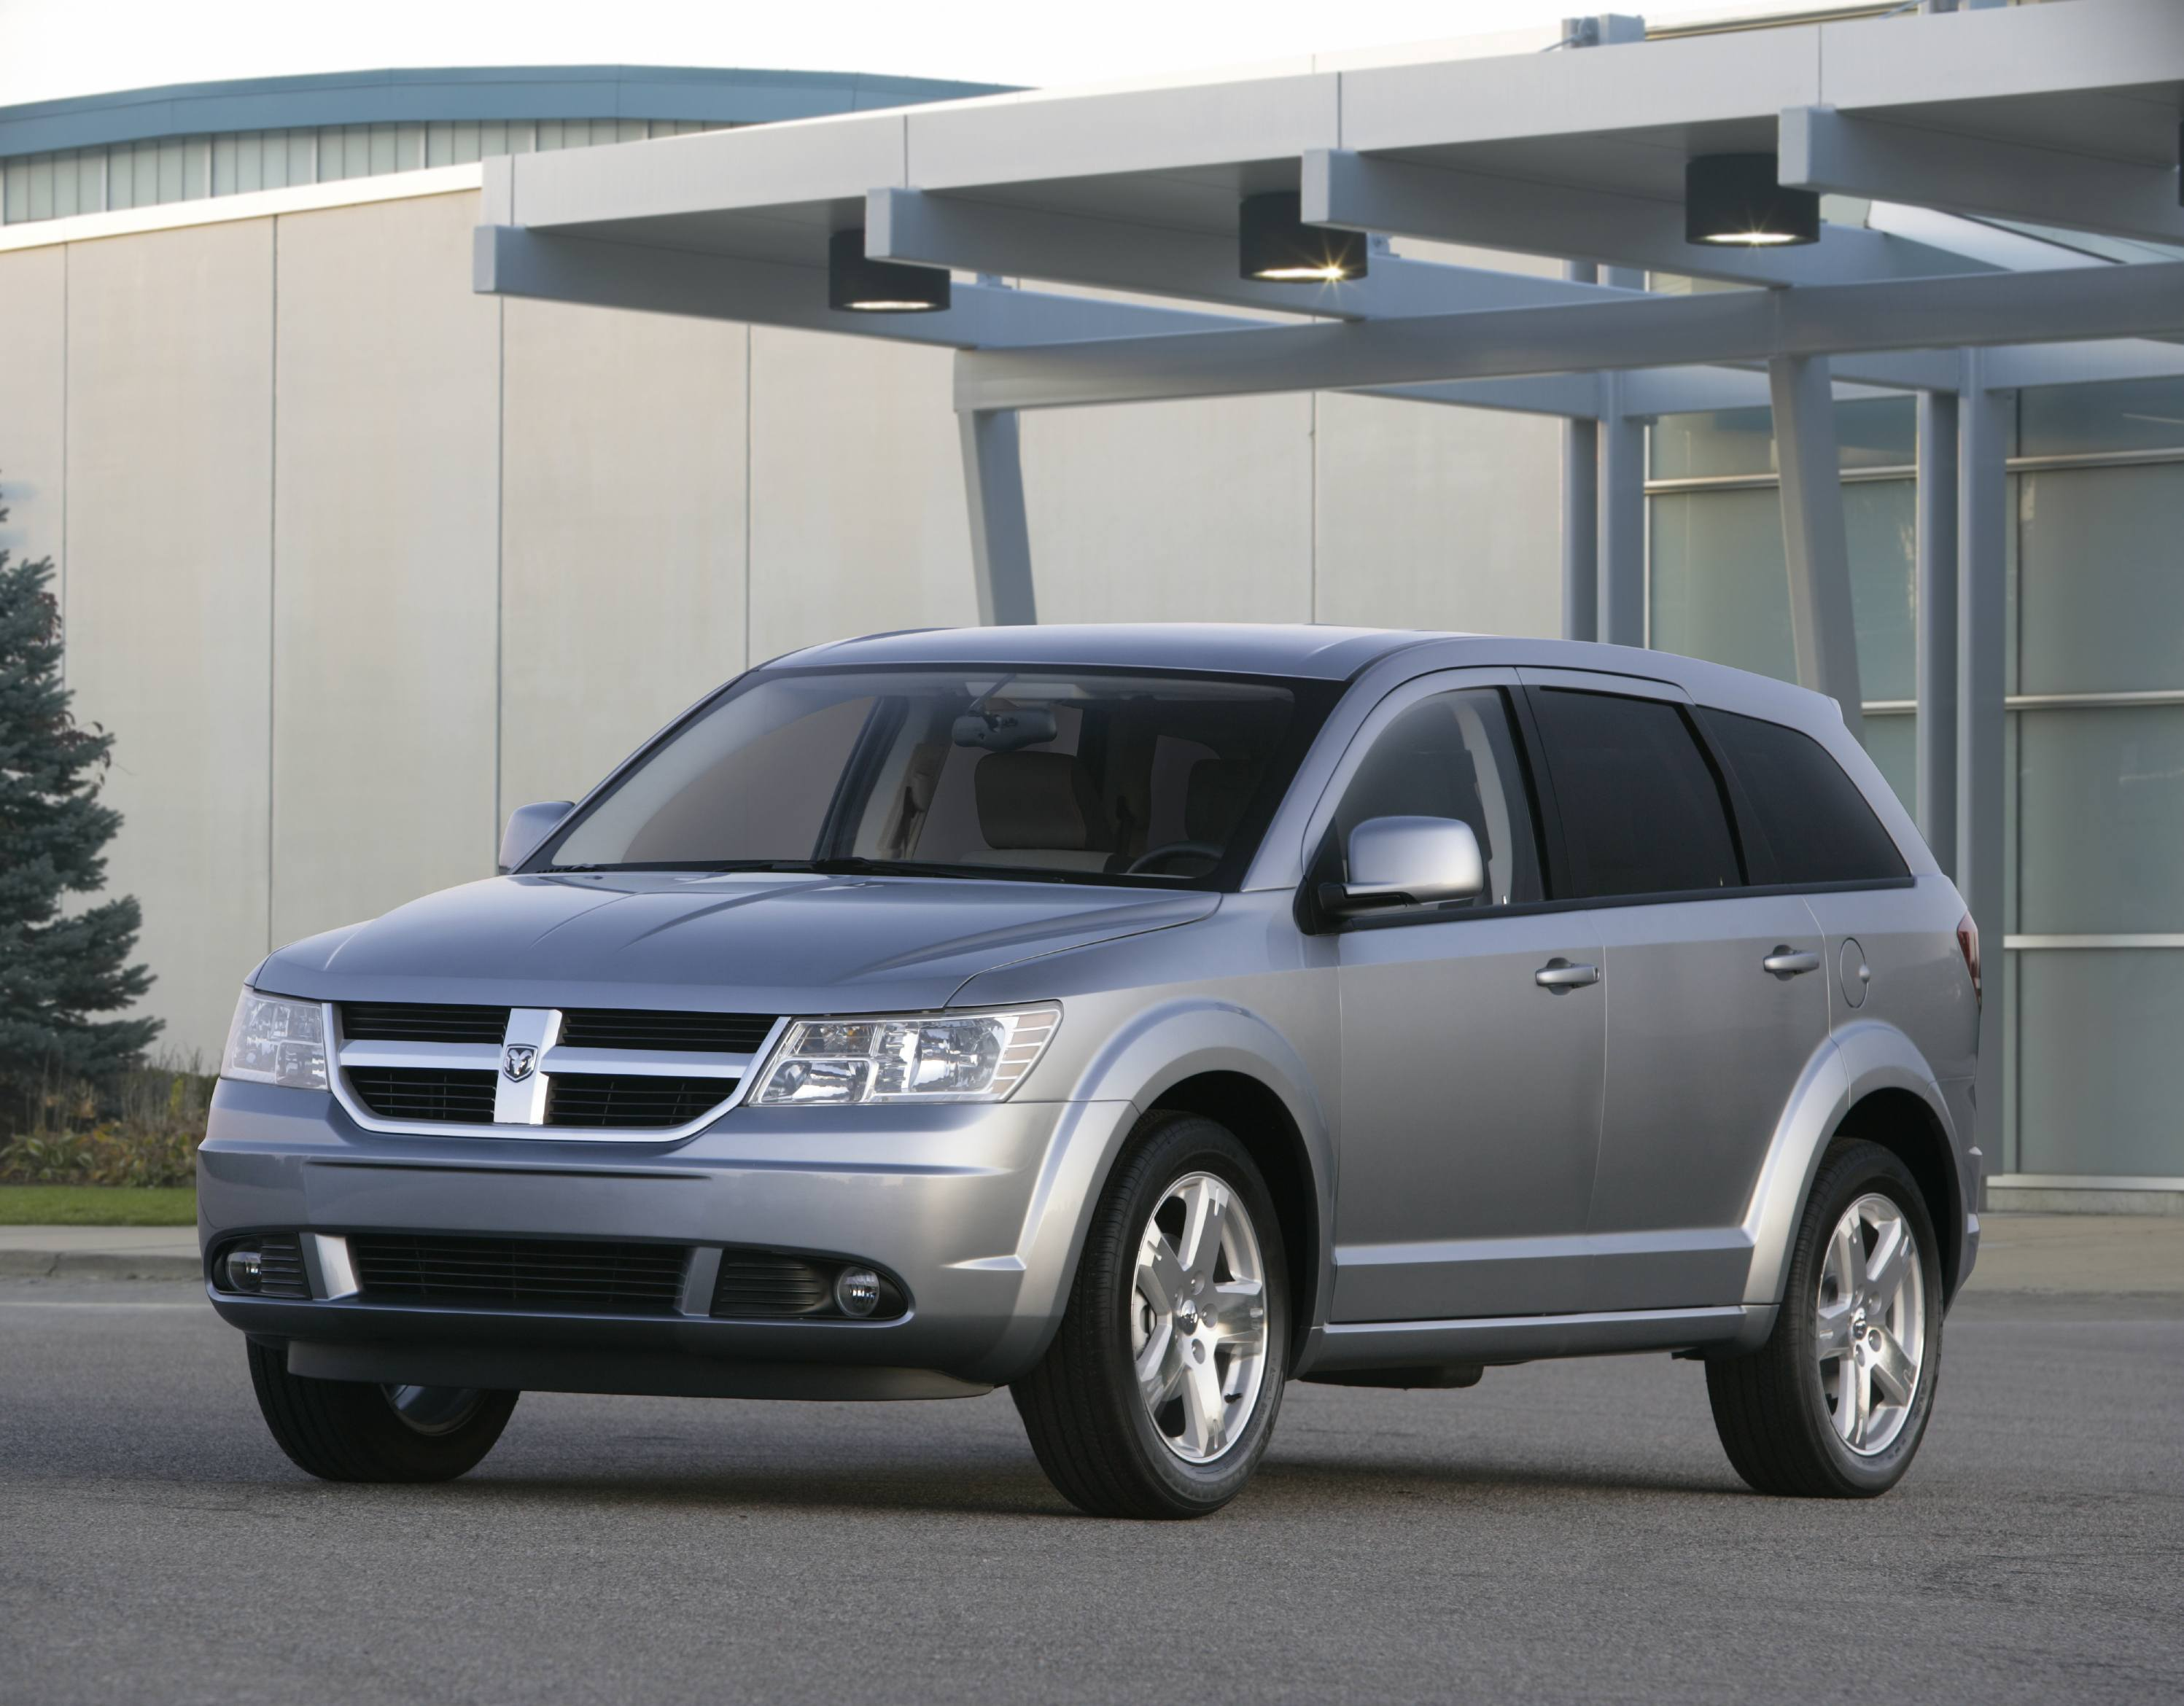 Should You Buy a Used Dodge Journey?